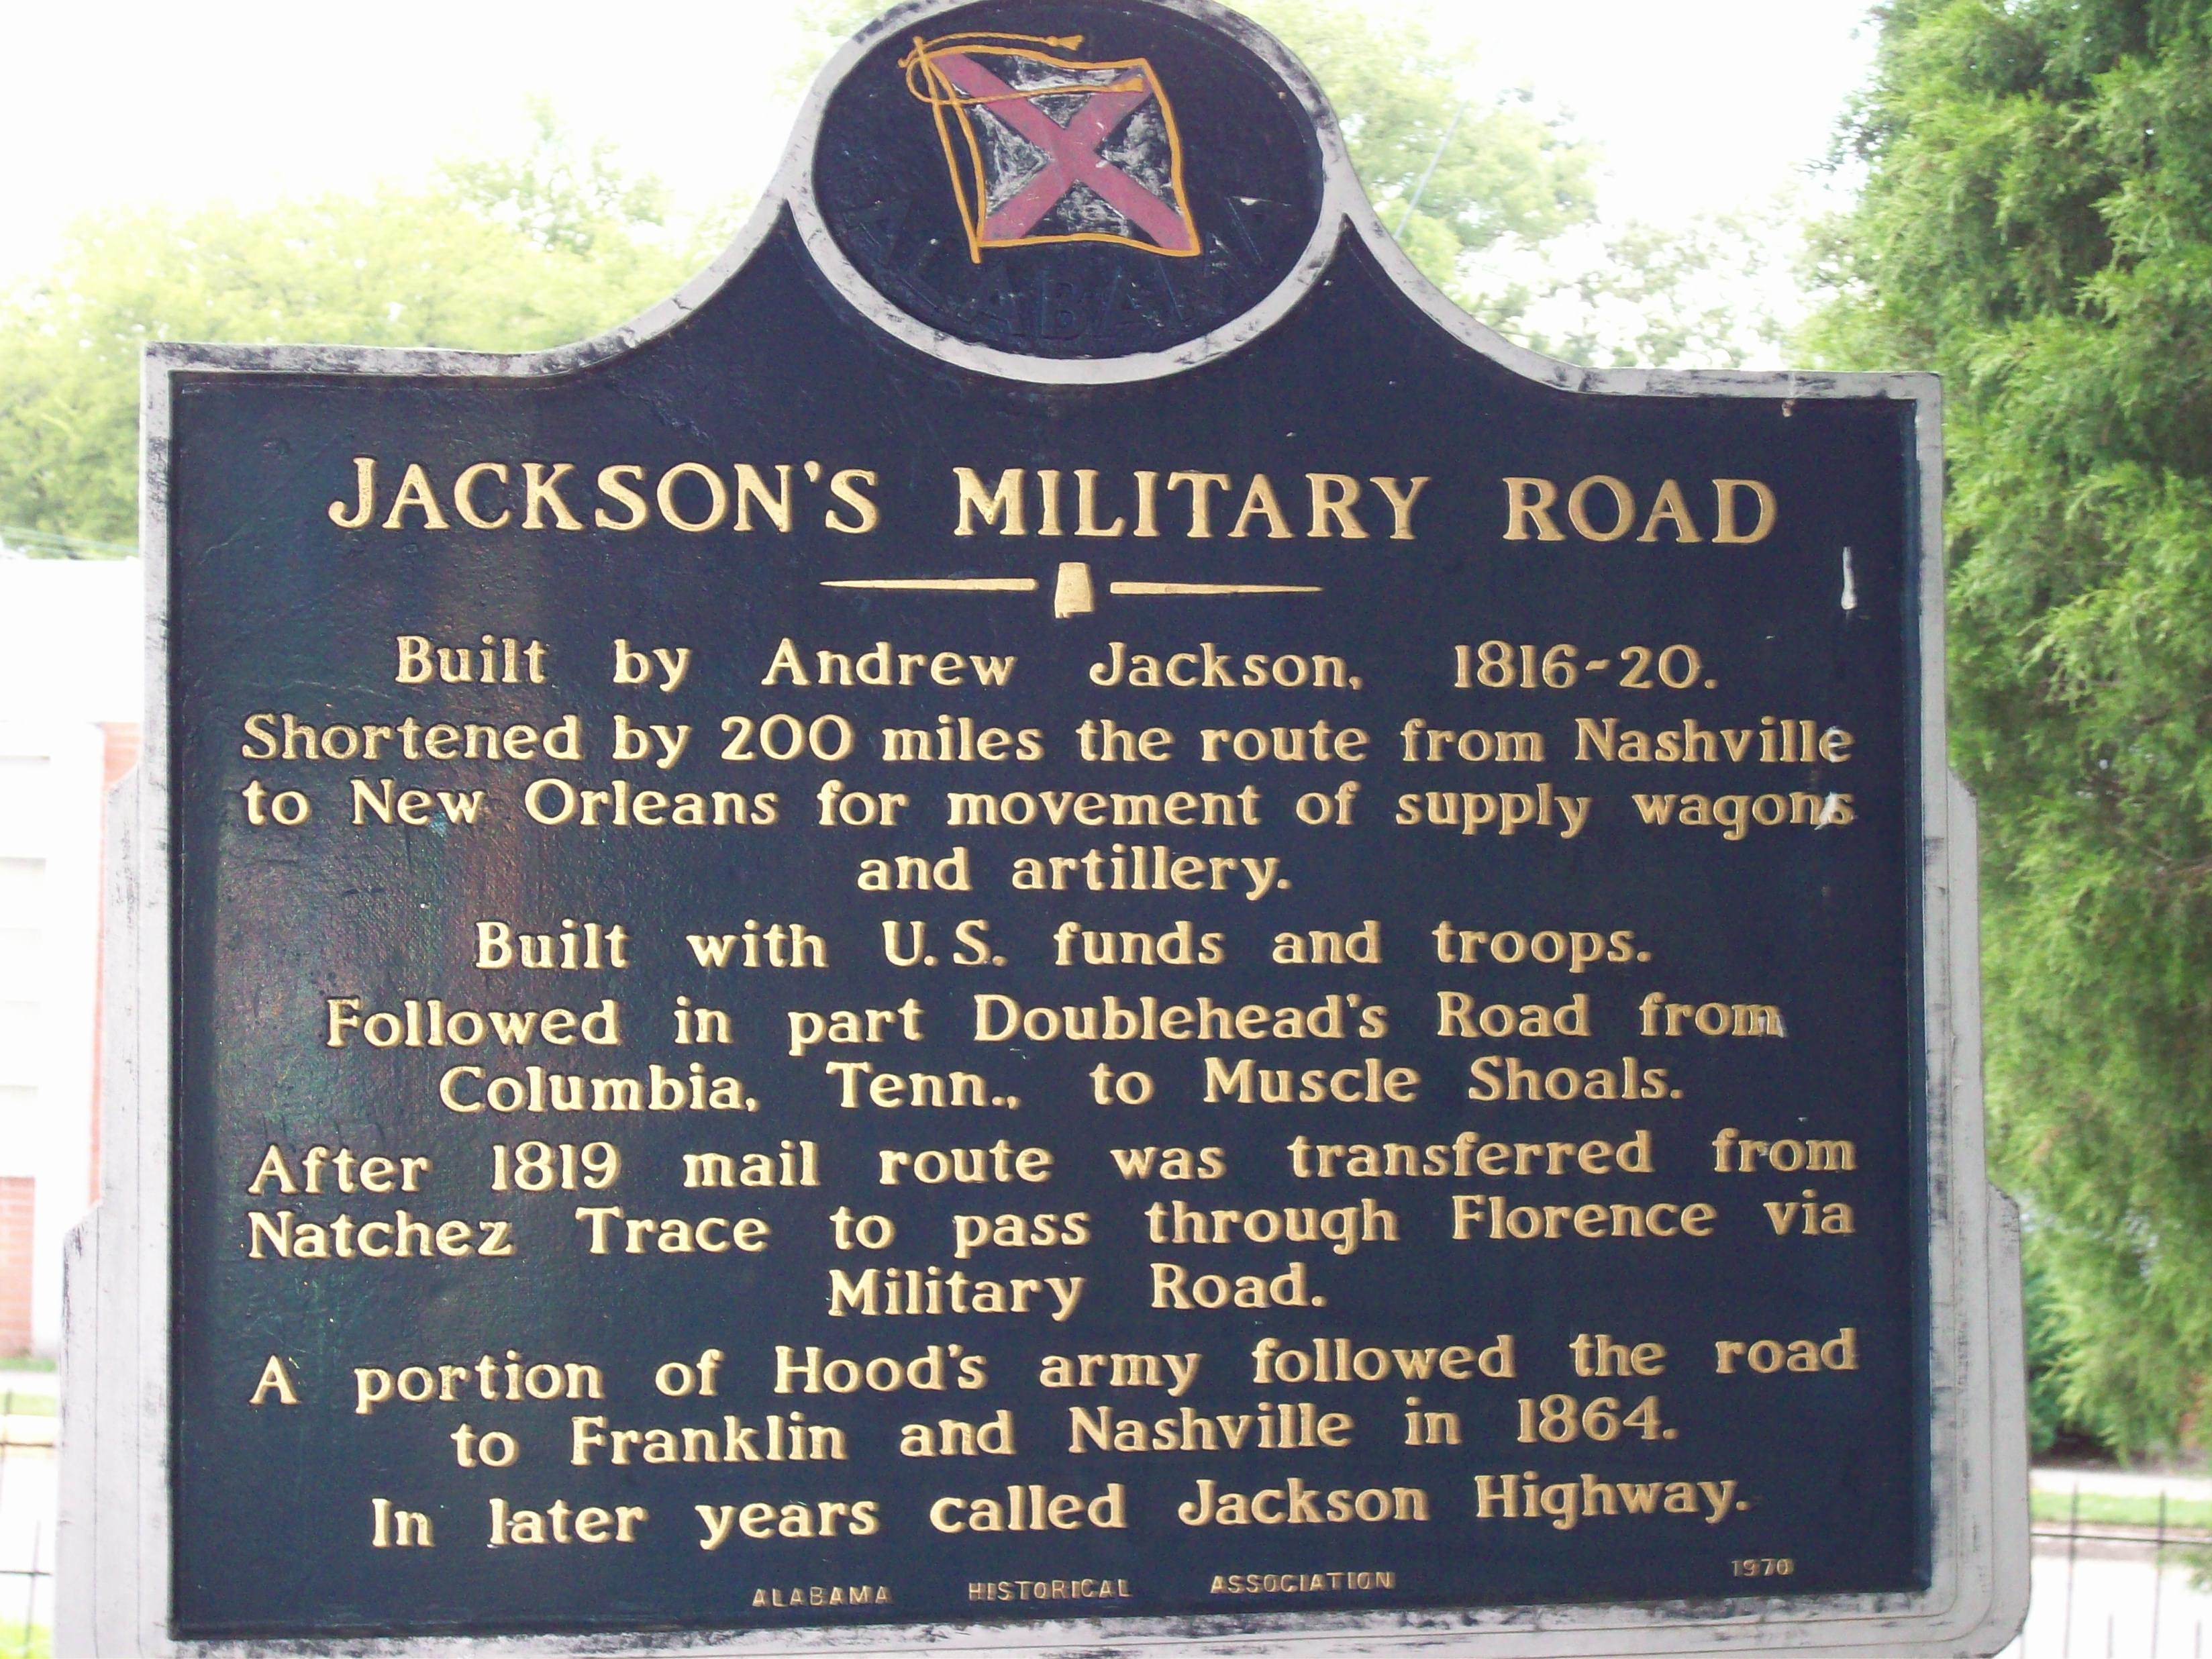 Jackson's Military Road historical marker